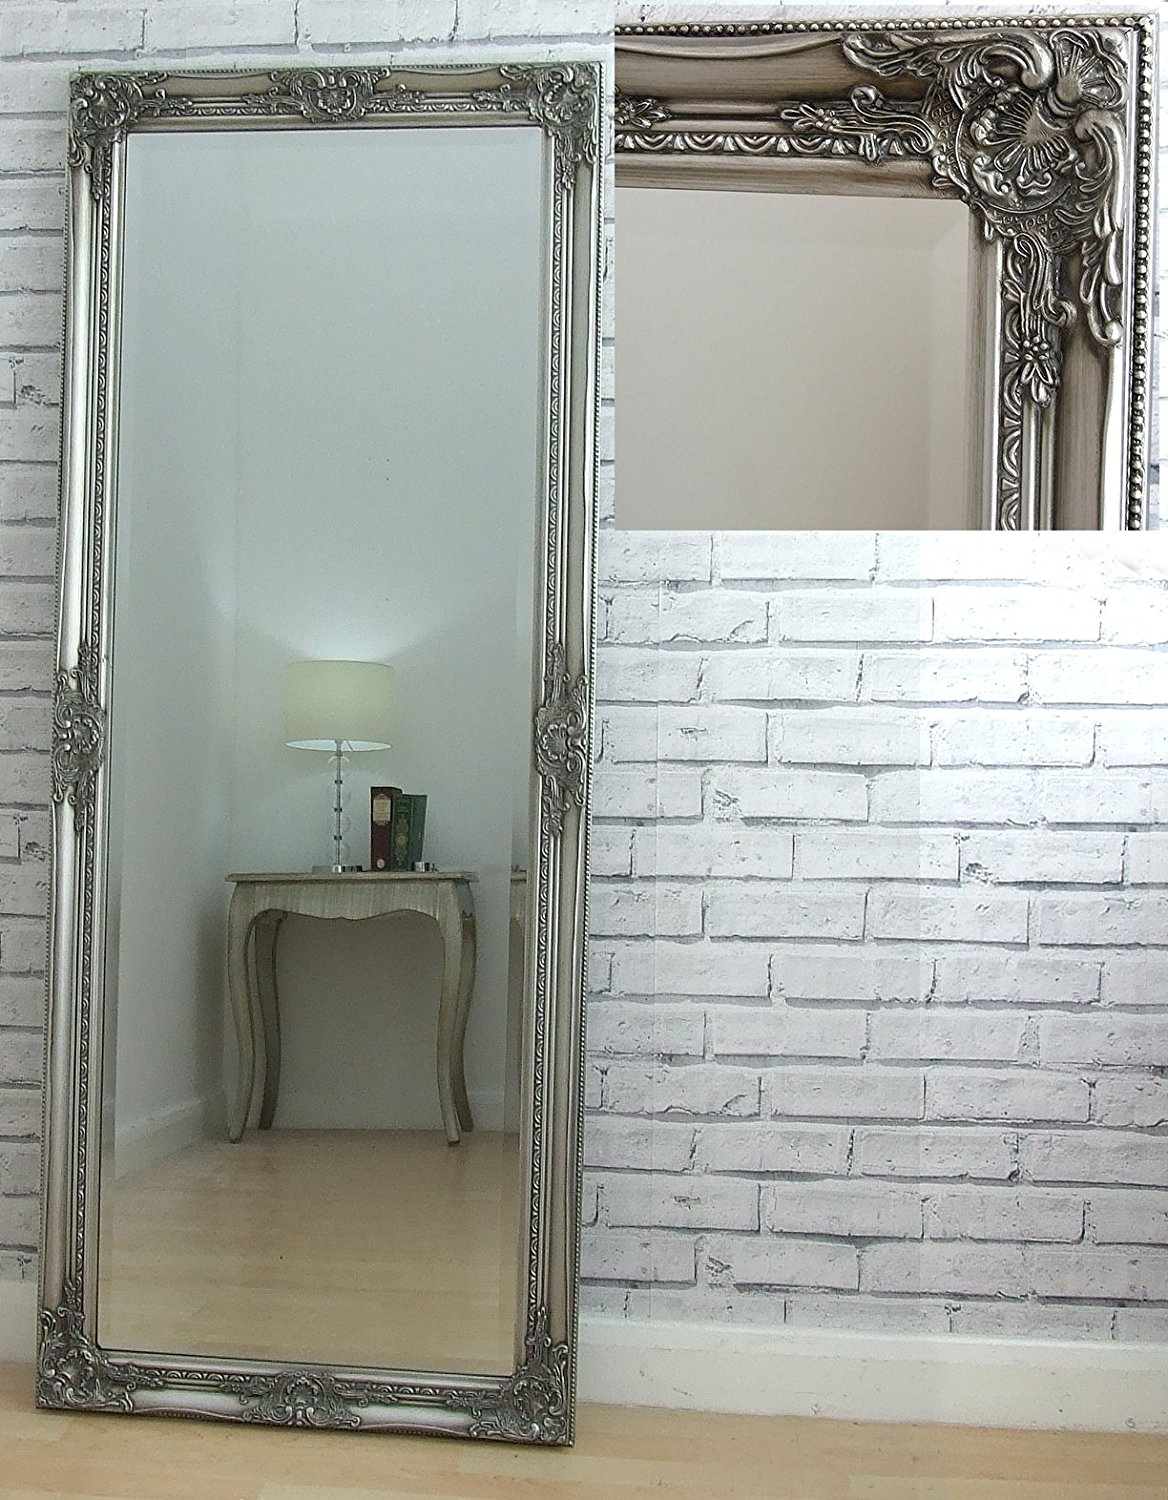 Ausergewohnlich White Vintage Full Length Wall Mirror Set For 2019 Full Length Oval Wall Mirrors (View 15 of 20)